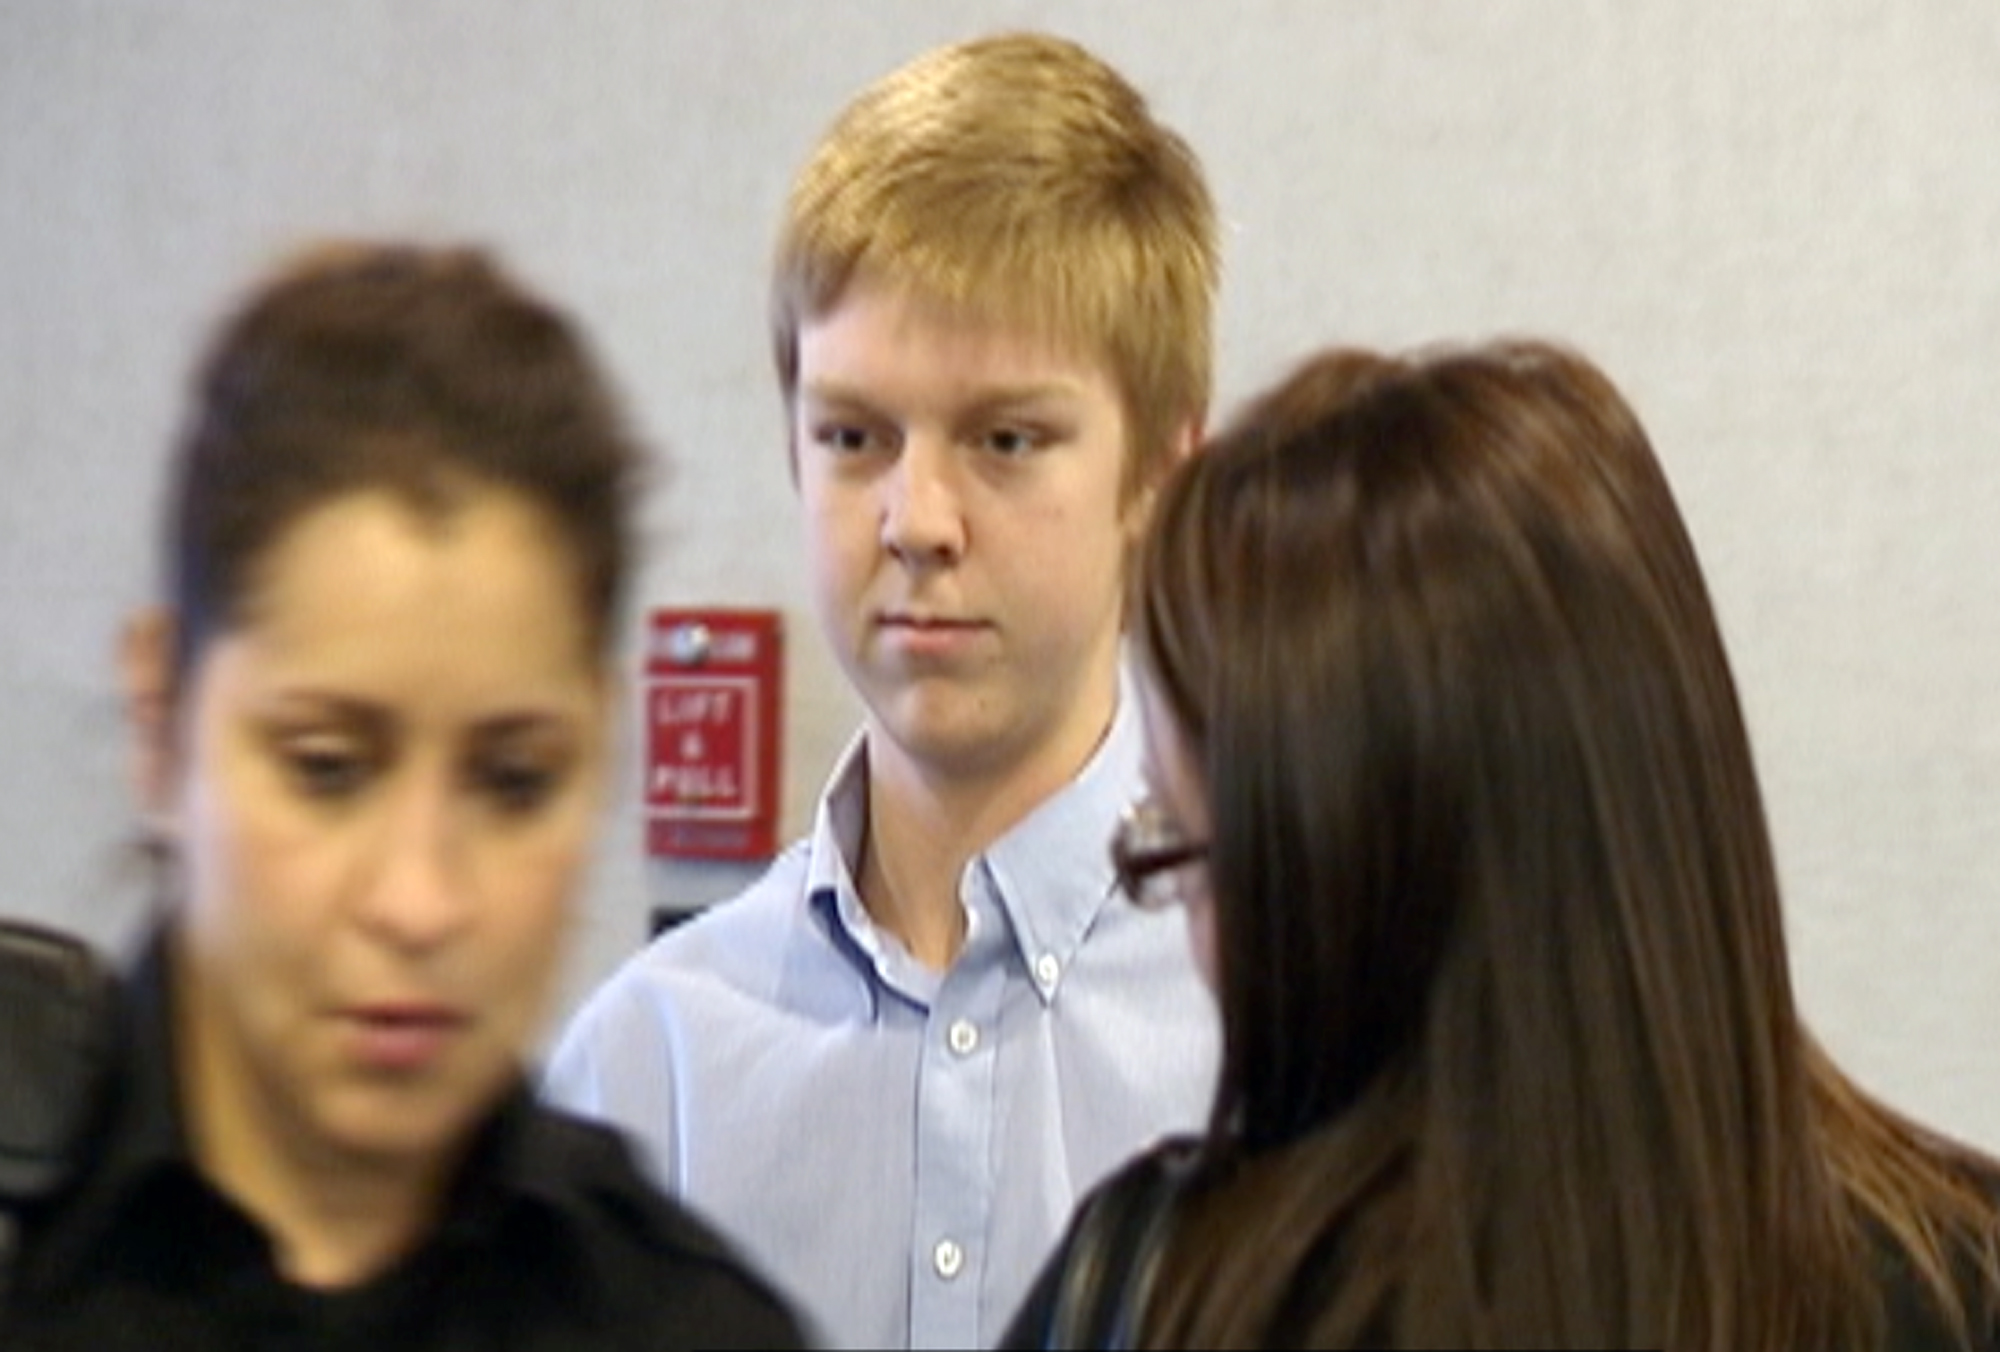 Ethan Couch is seen during his court hearing in Fort Worth, Texas in this December 2013 image taken from a video by KDFW-FOX 4.